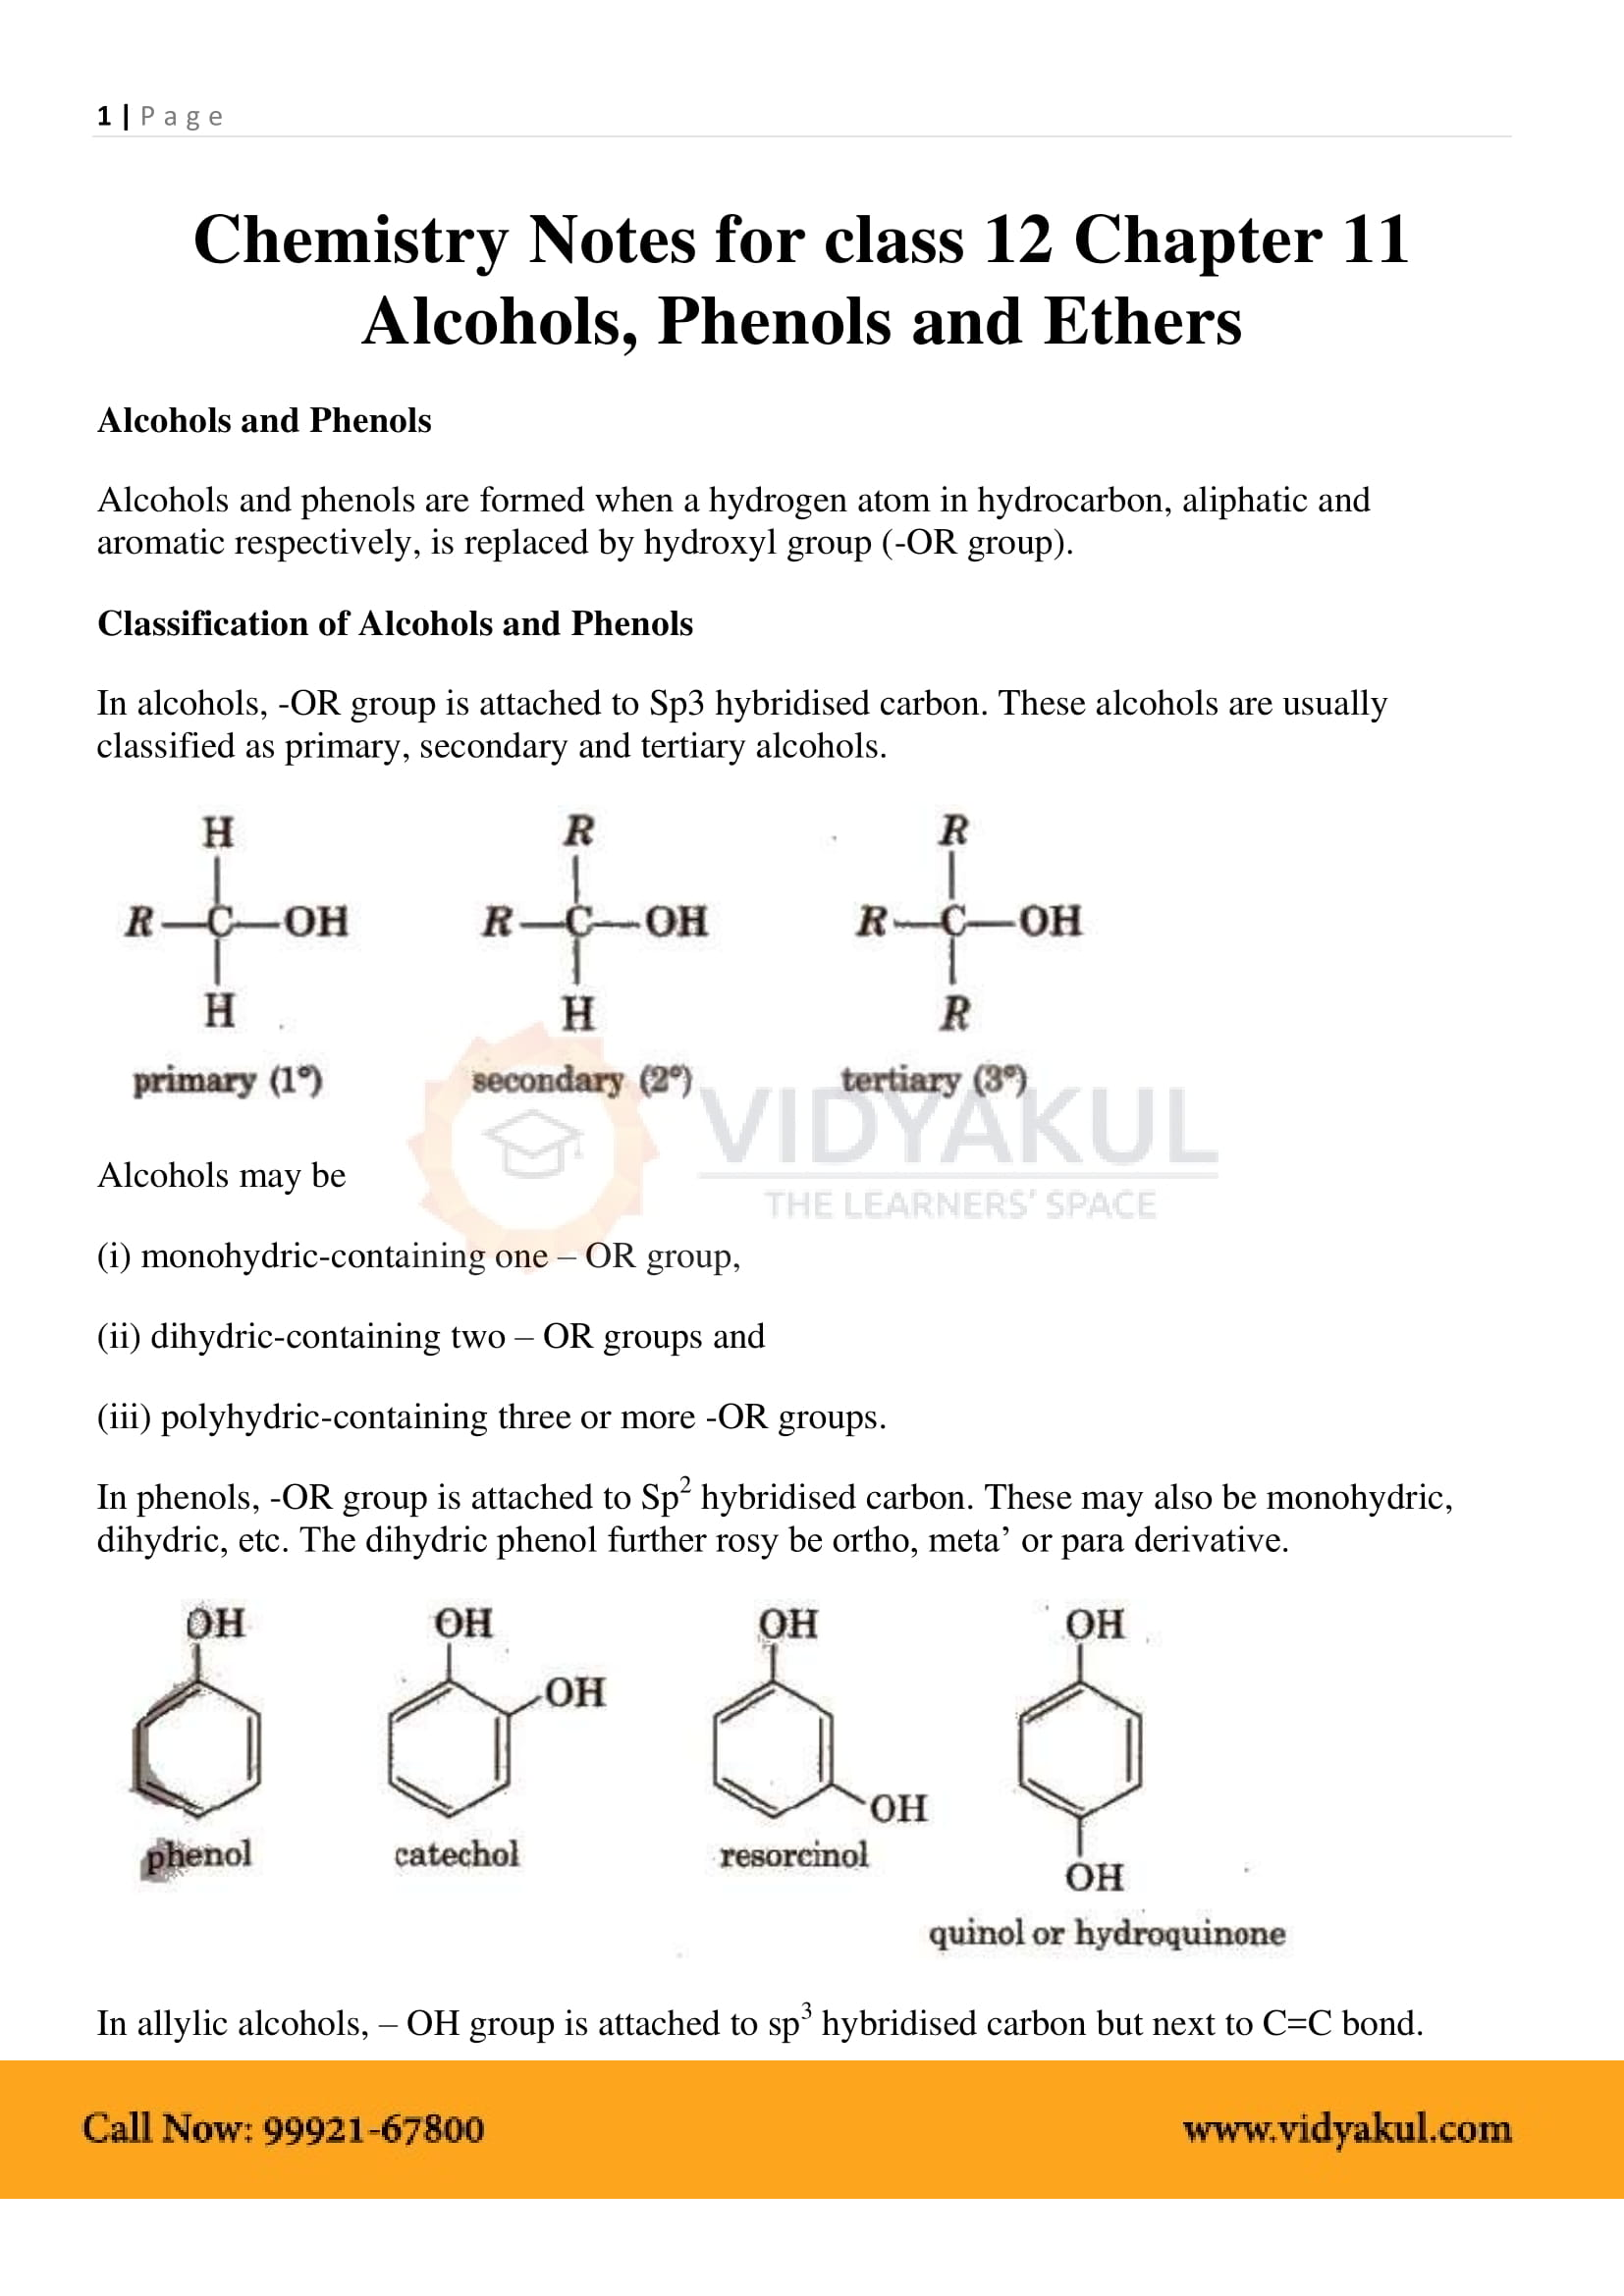 Cbse class 12 chemistry notes download